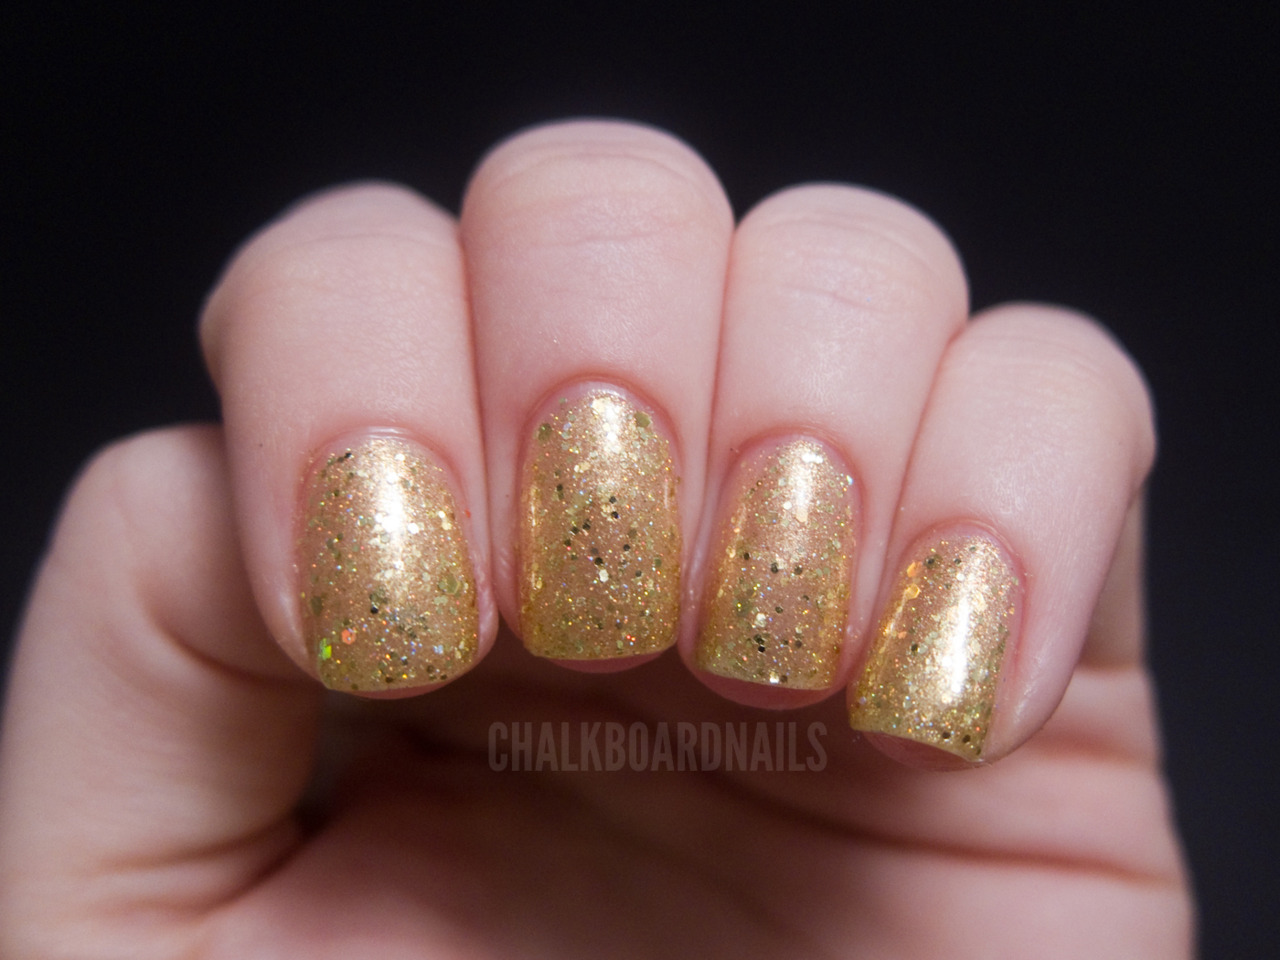 Elemental Styles - 79 Fool's GoldView more swatches